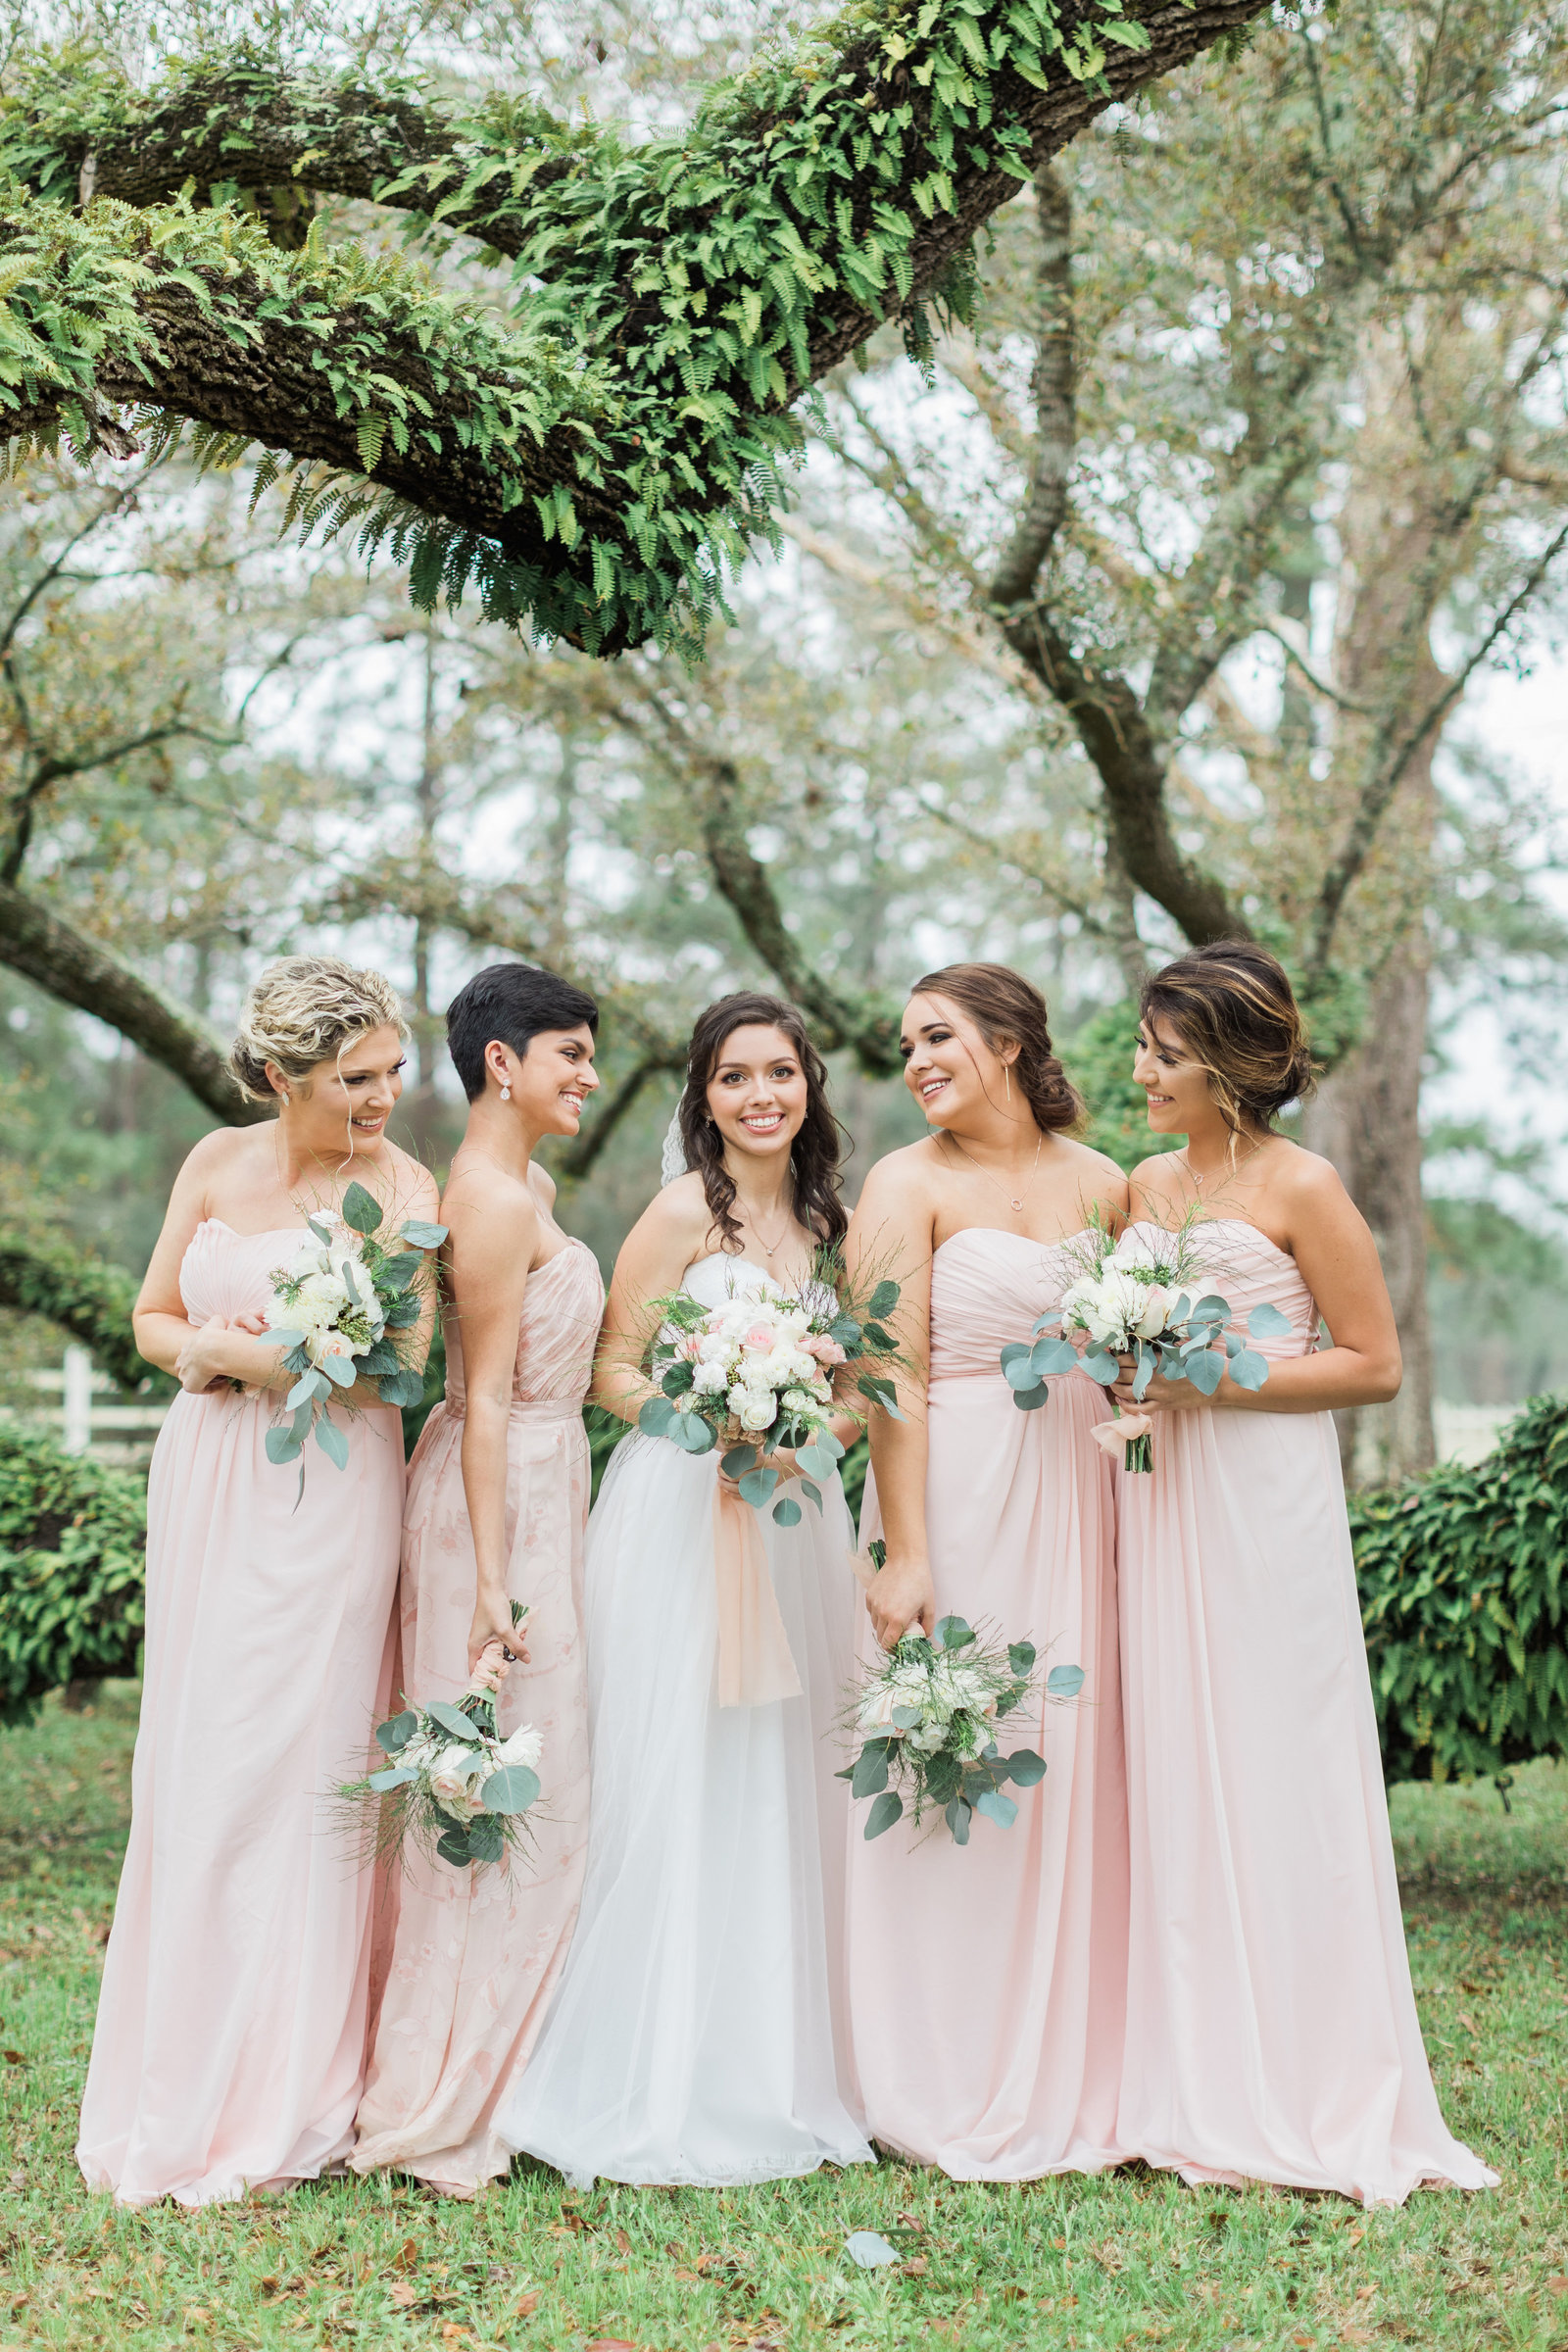 East Texas Bride and Bridesmaids